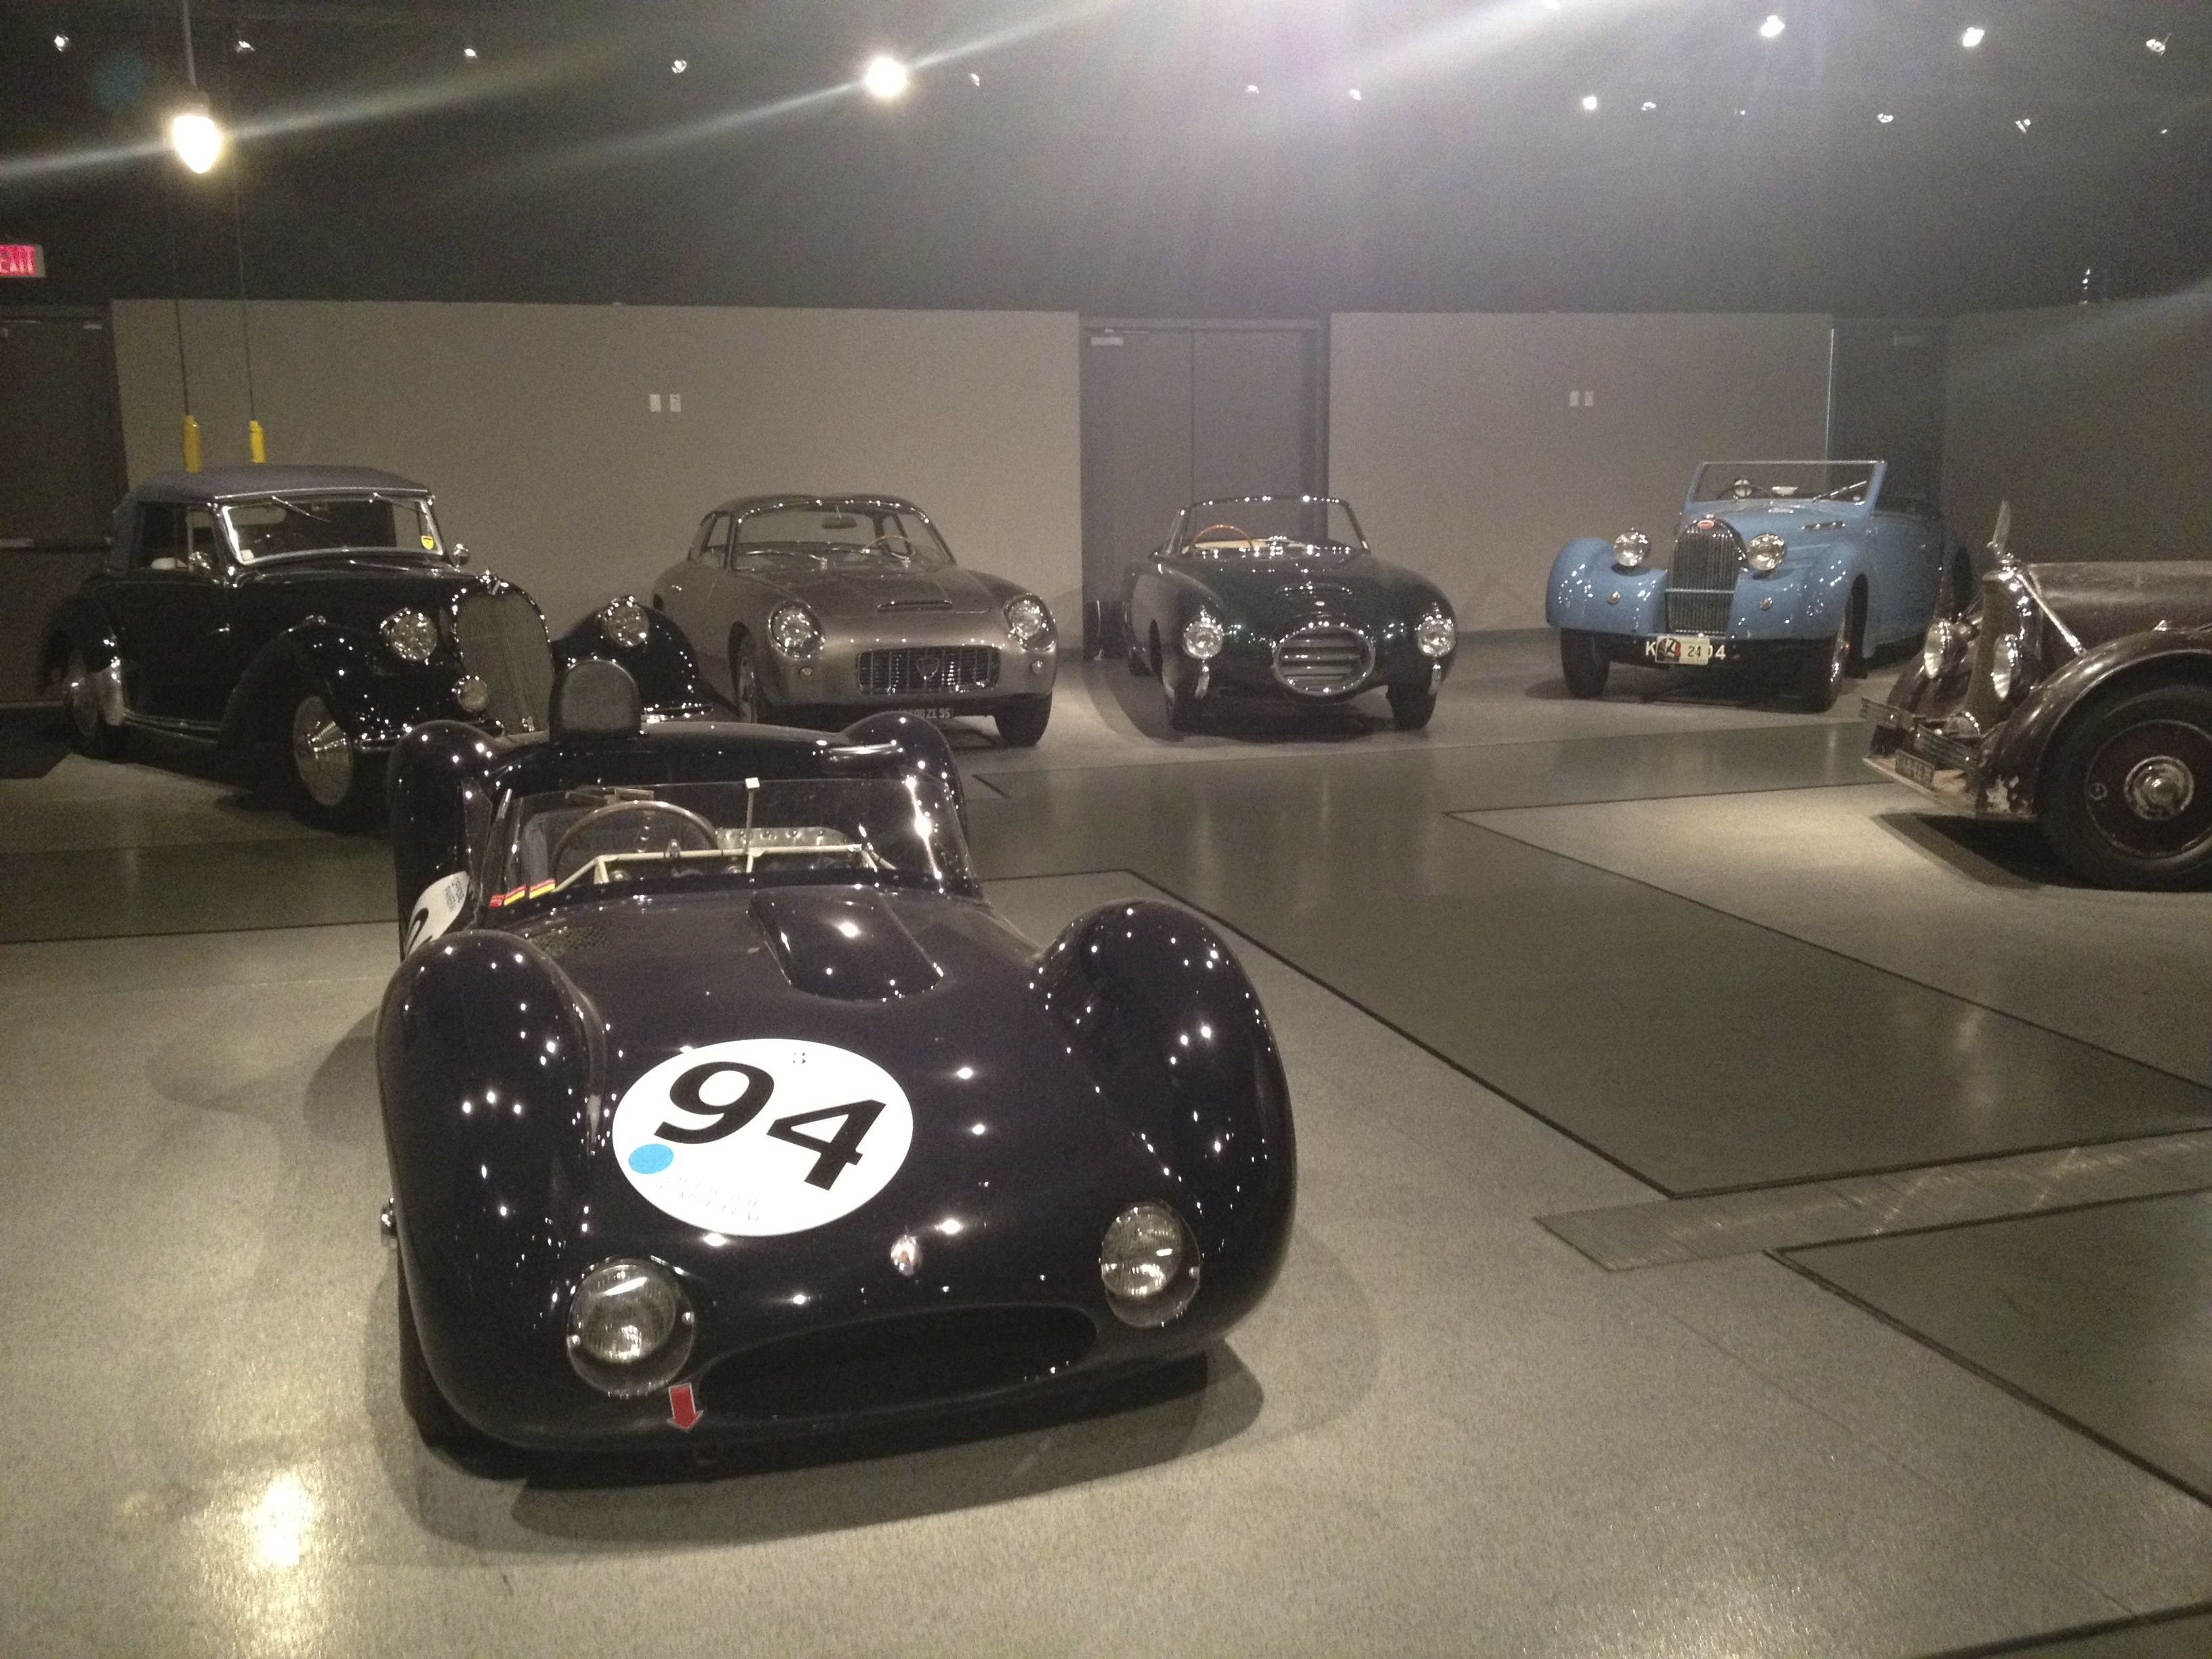 Bill Pope\'s vintage race car collection in AZ | Cars, antique cars ...